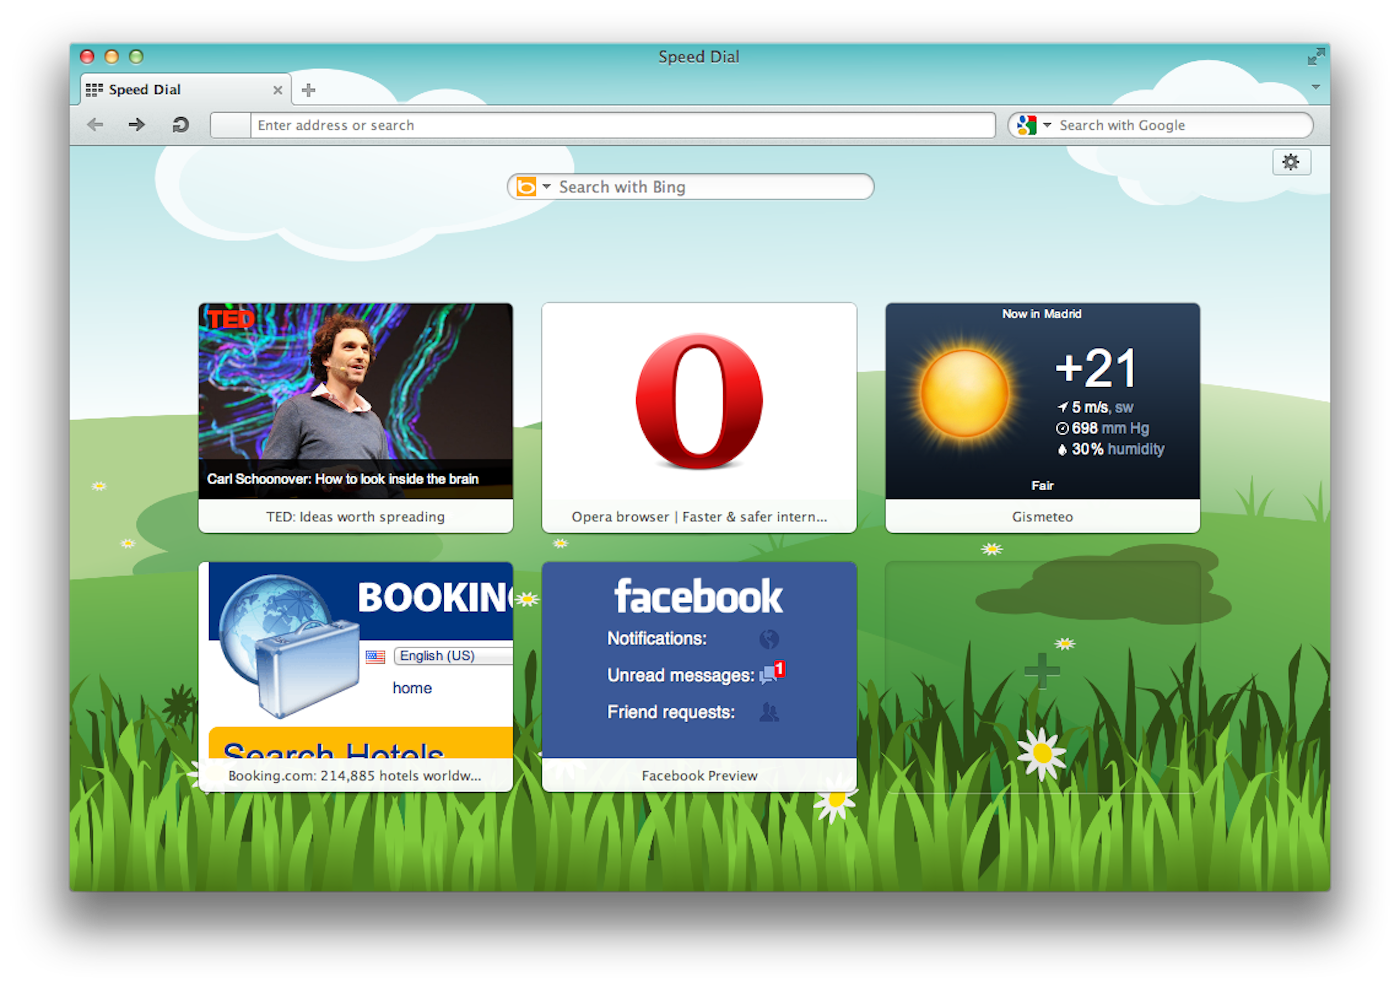 Opera pushes new beta desktop browser (12.10) with enhanced OS integration, SPDY support and new APIs ...